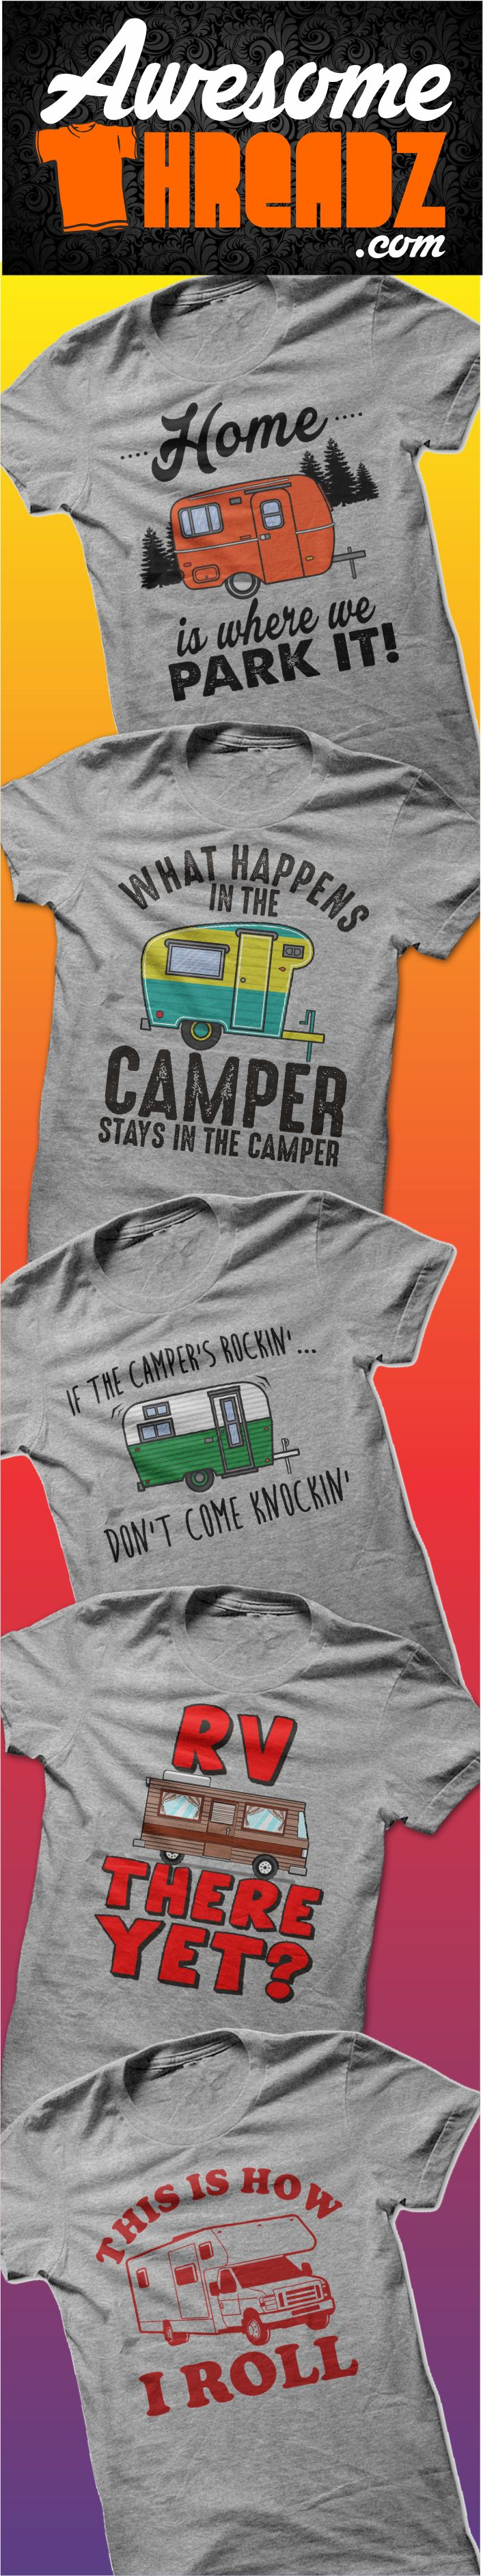 See All Of Our Camping Shirts At Awesome Threadz